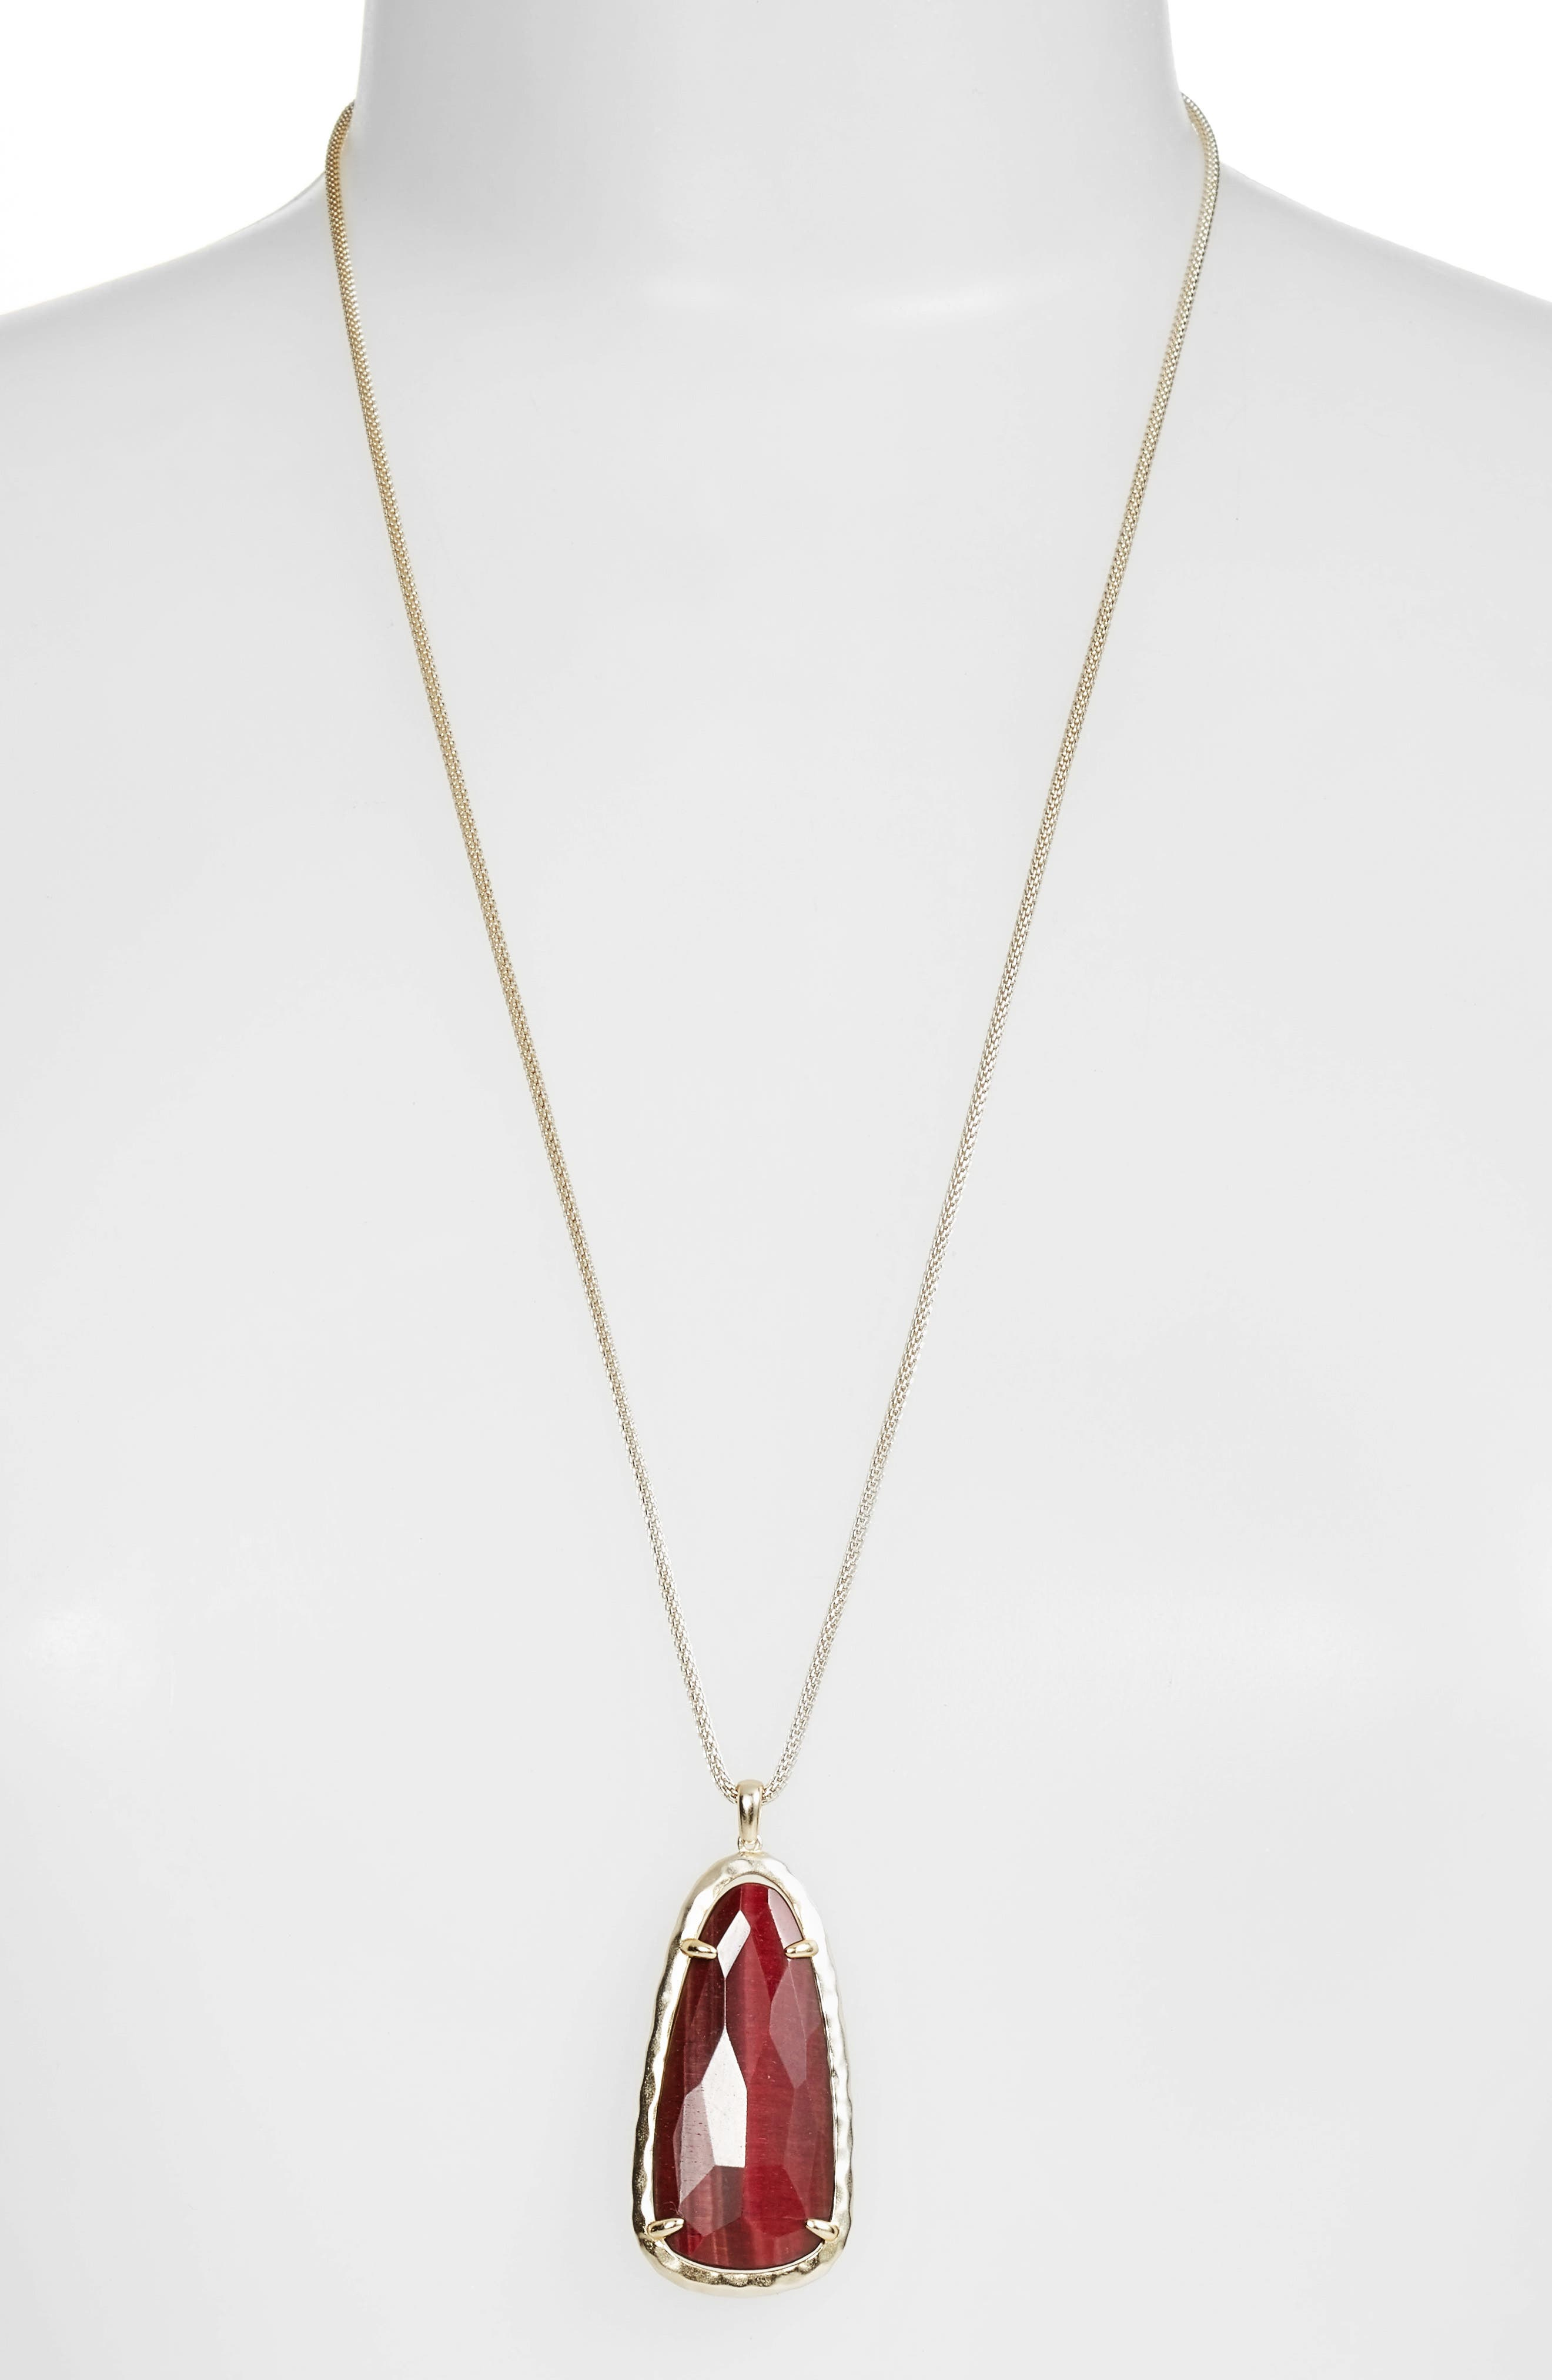 Kendra Scott Saylor Pendant Necklace